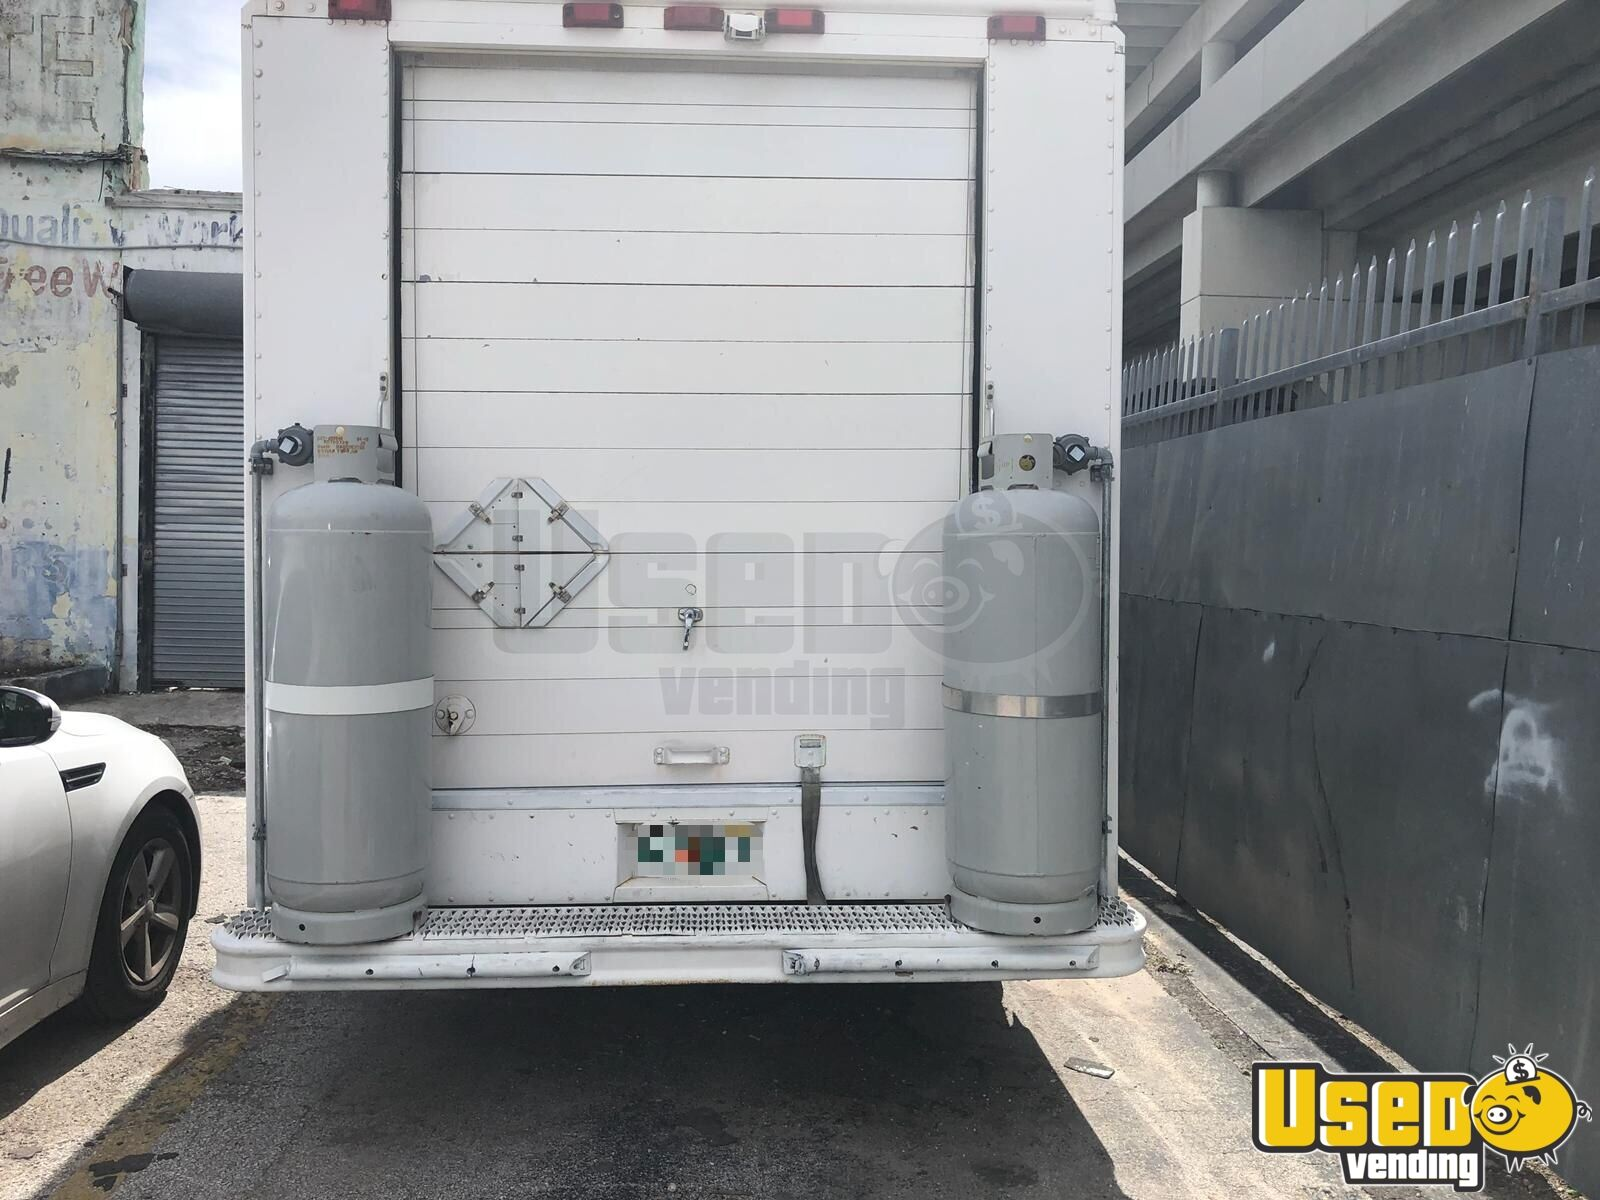 2001 Frht All-purpose Food Truck Stainless Steel Wall Covers Florida Diesel Engine for Sale - 3